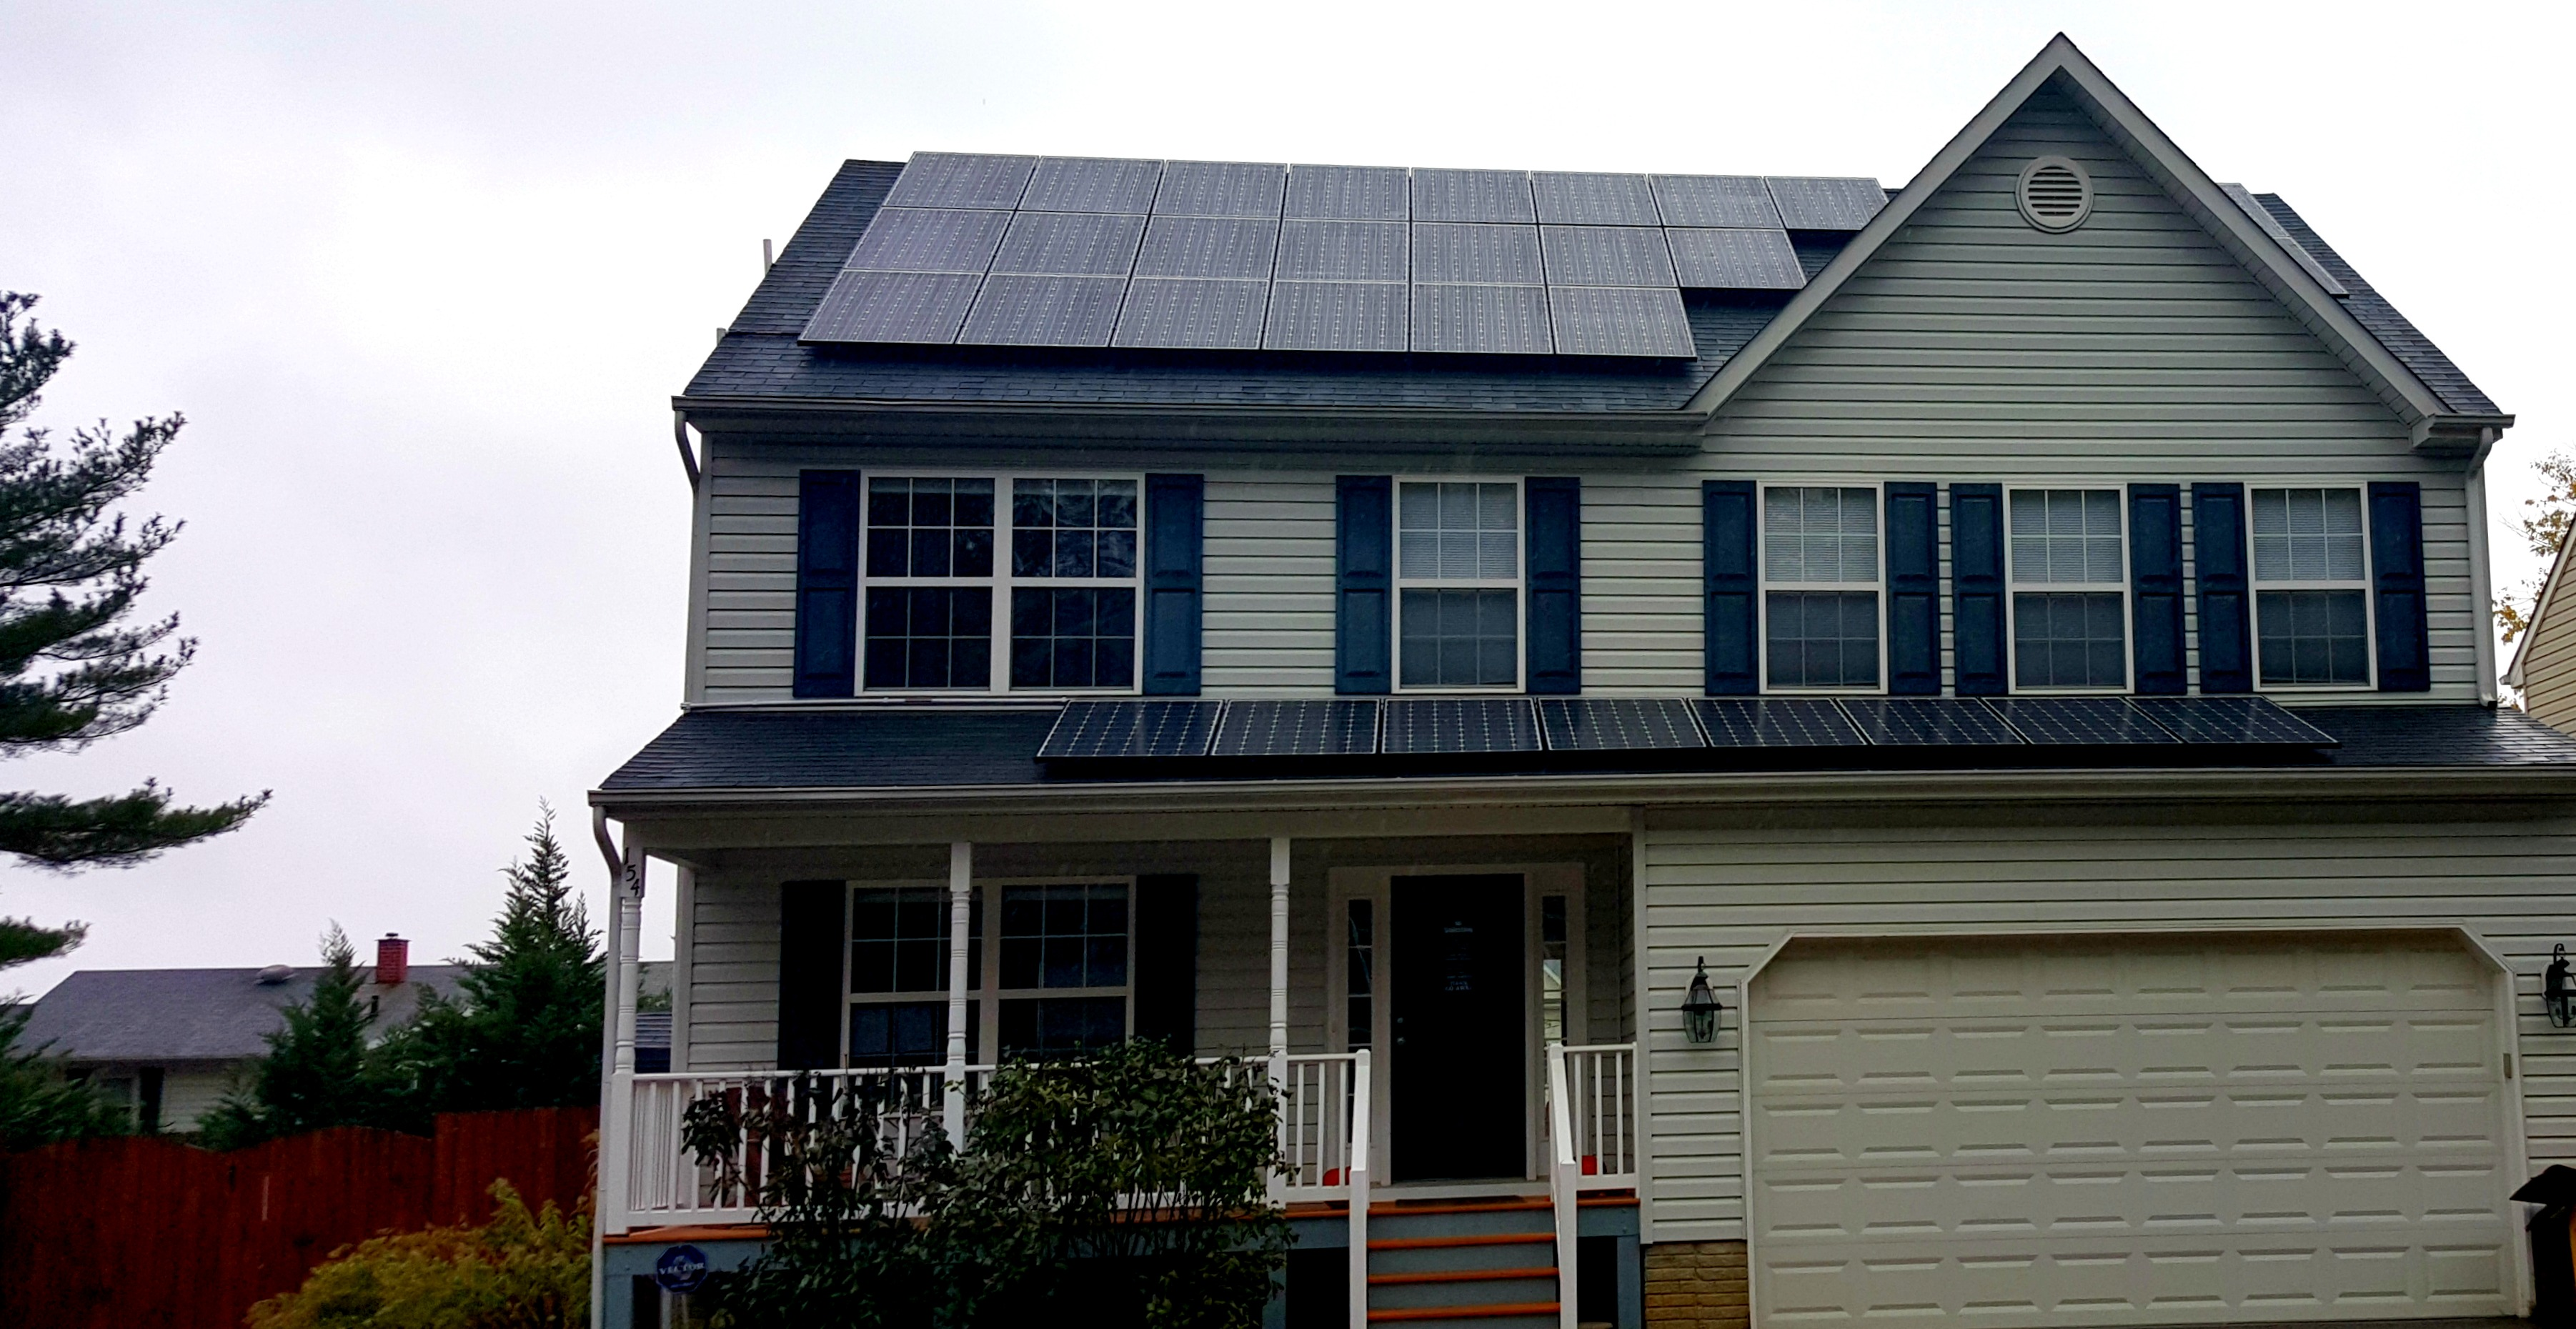 Solar Panel Installation For A House In Severna Park Md